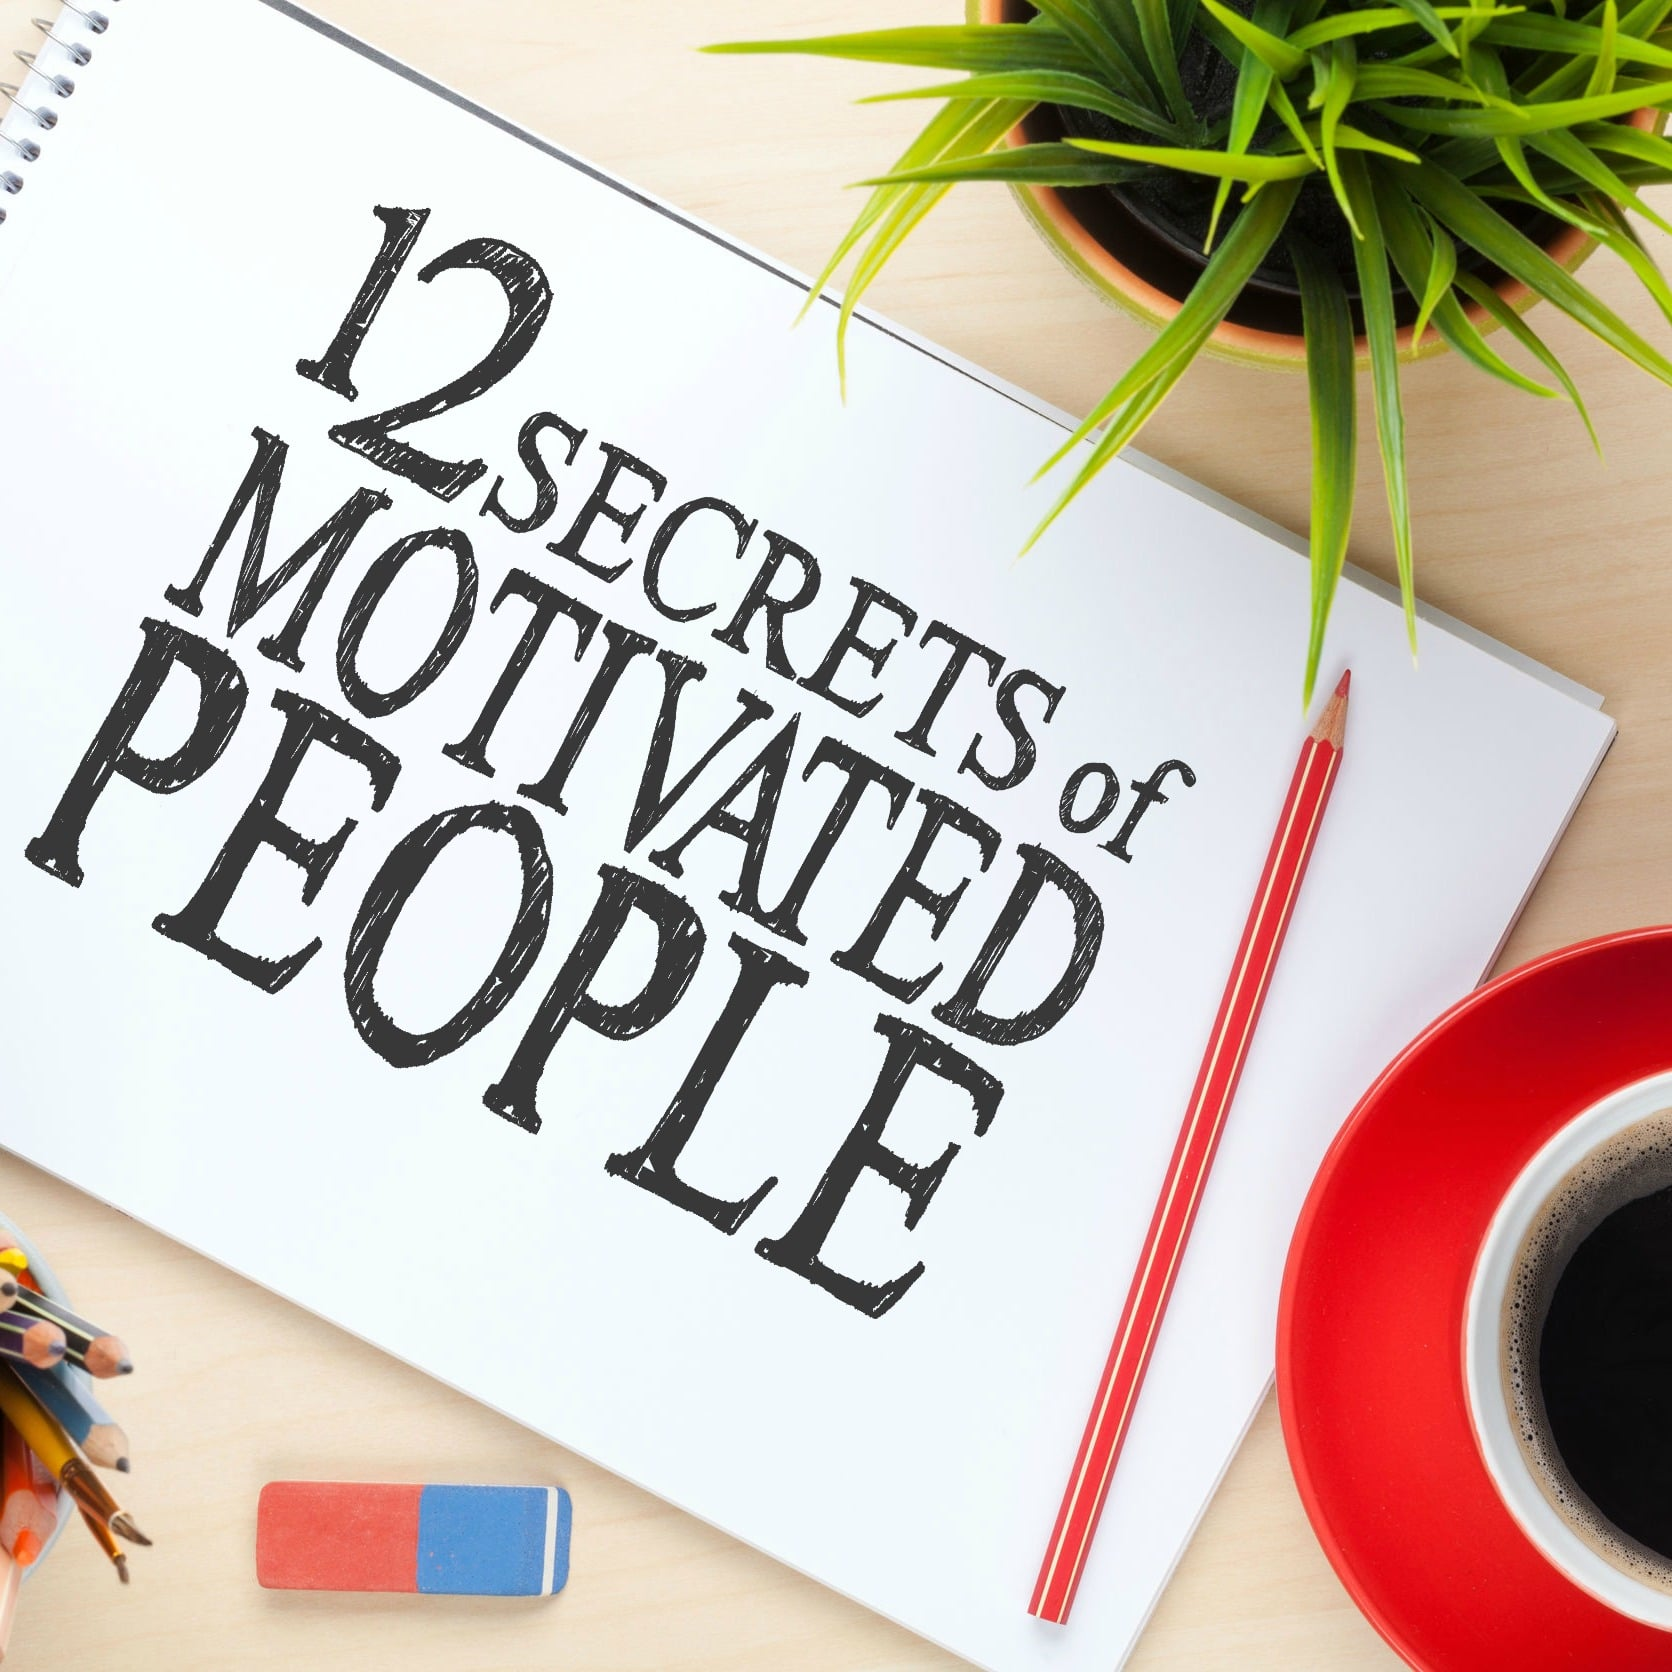 12 Secrets Of Motivated People Square 3